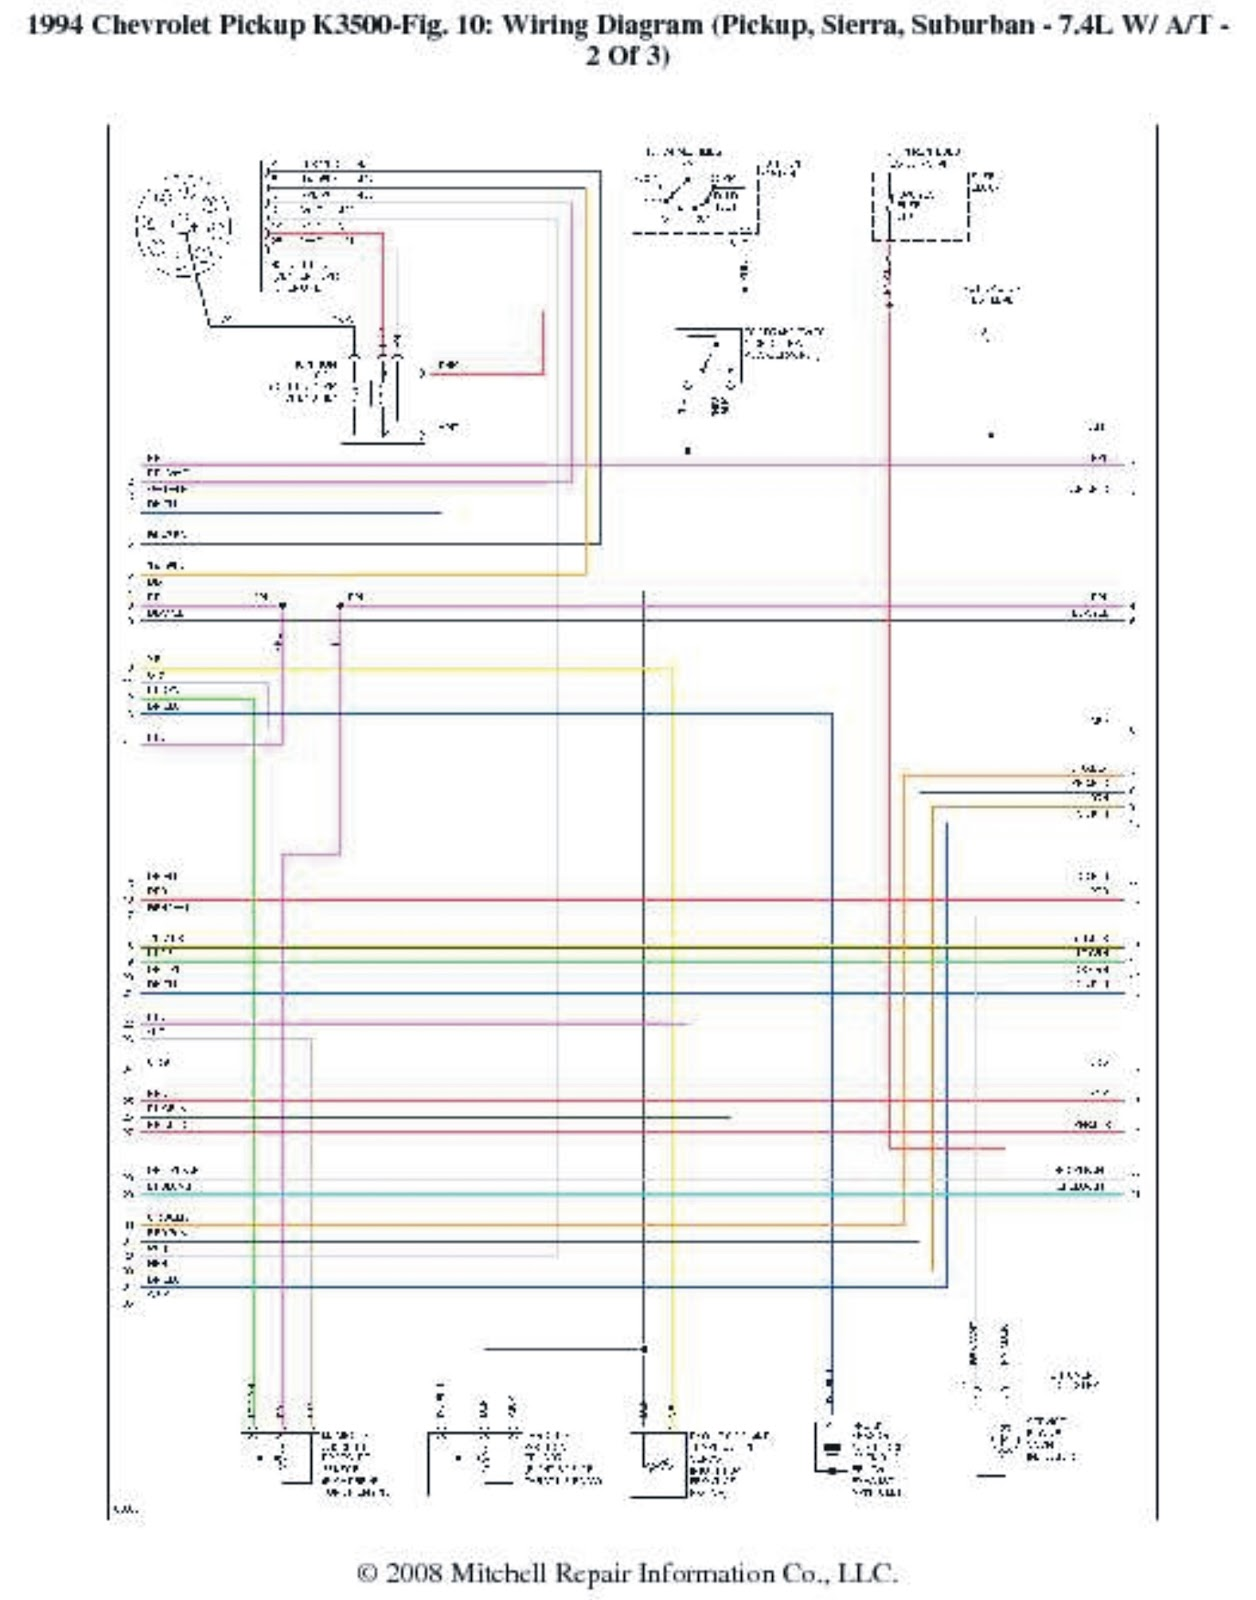 1993 Chevy S10 Fuse Box Diagram Free Download Wiring Diagrams 1996 Nissan Pickup Amusing Photos Best Image Wire Binvm Us Remarkable 1994 Gmc Truck Images Stratocaster